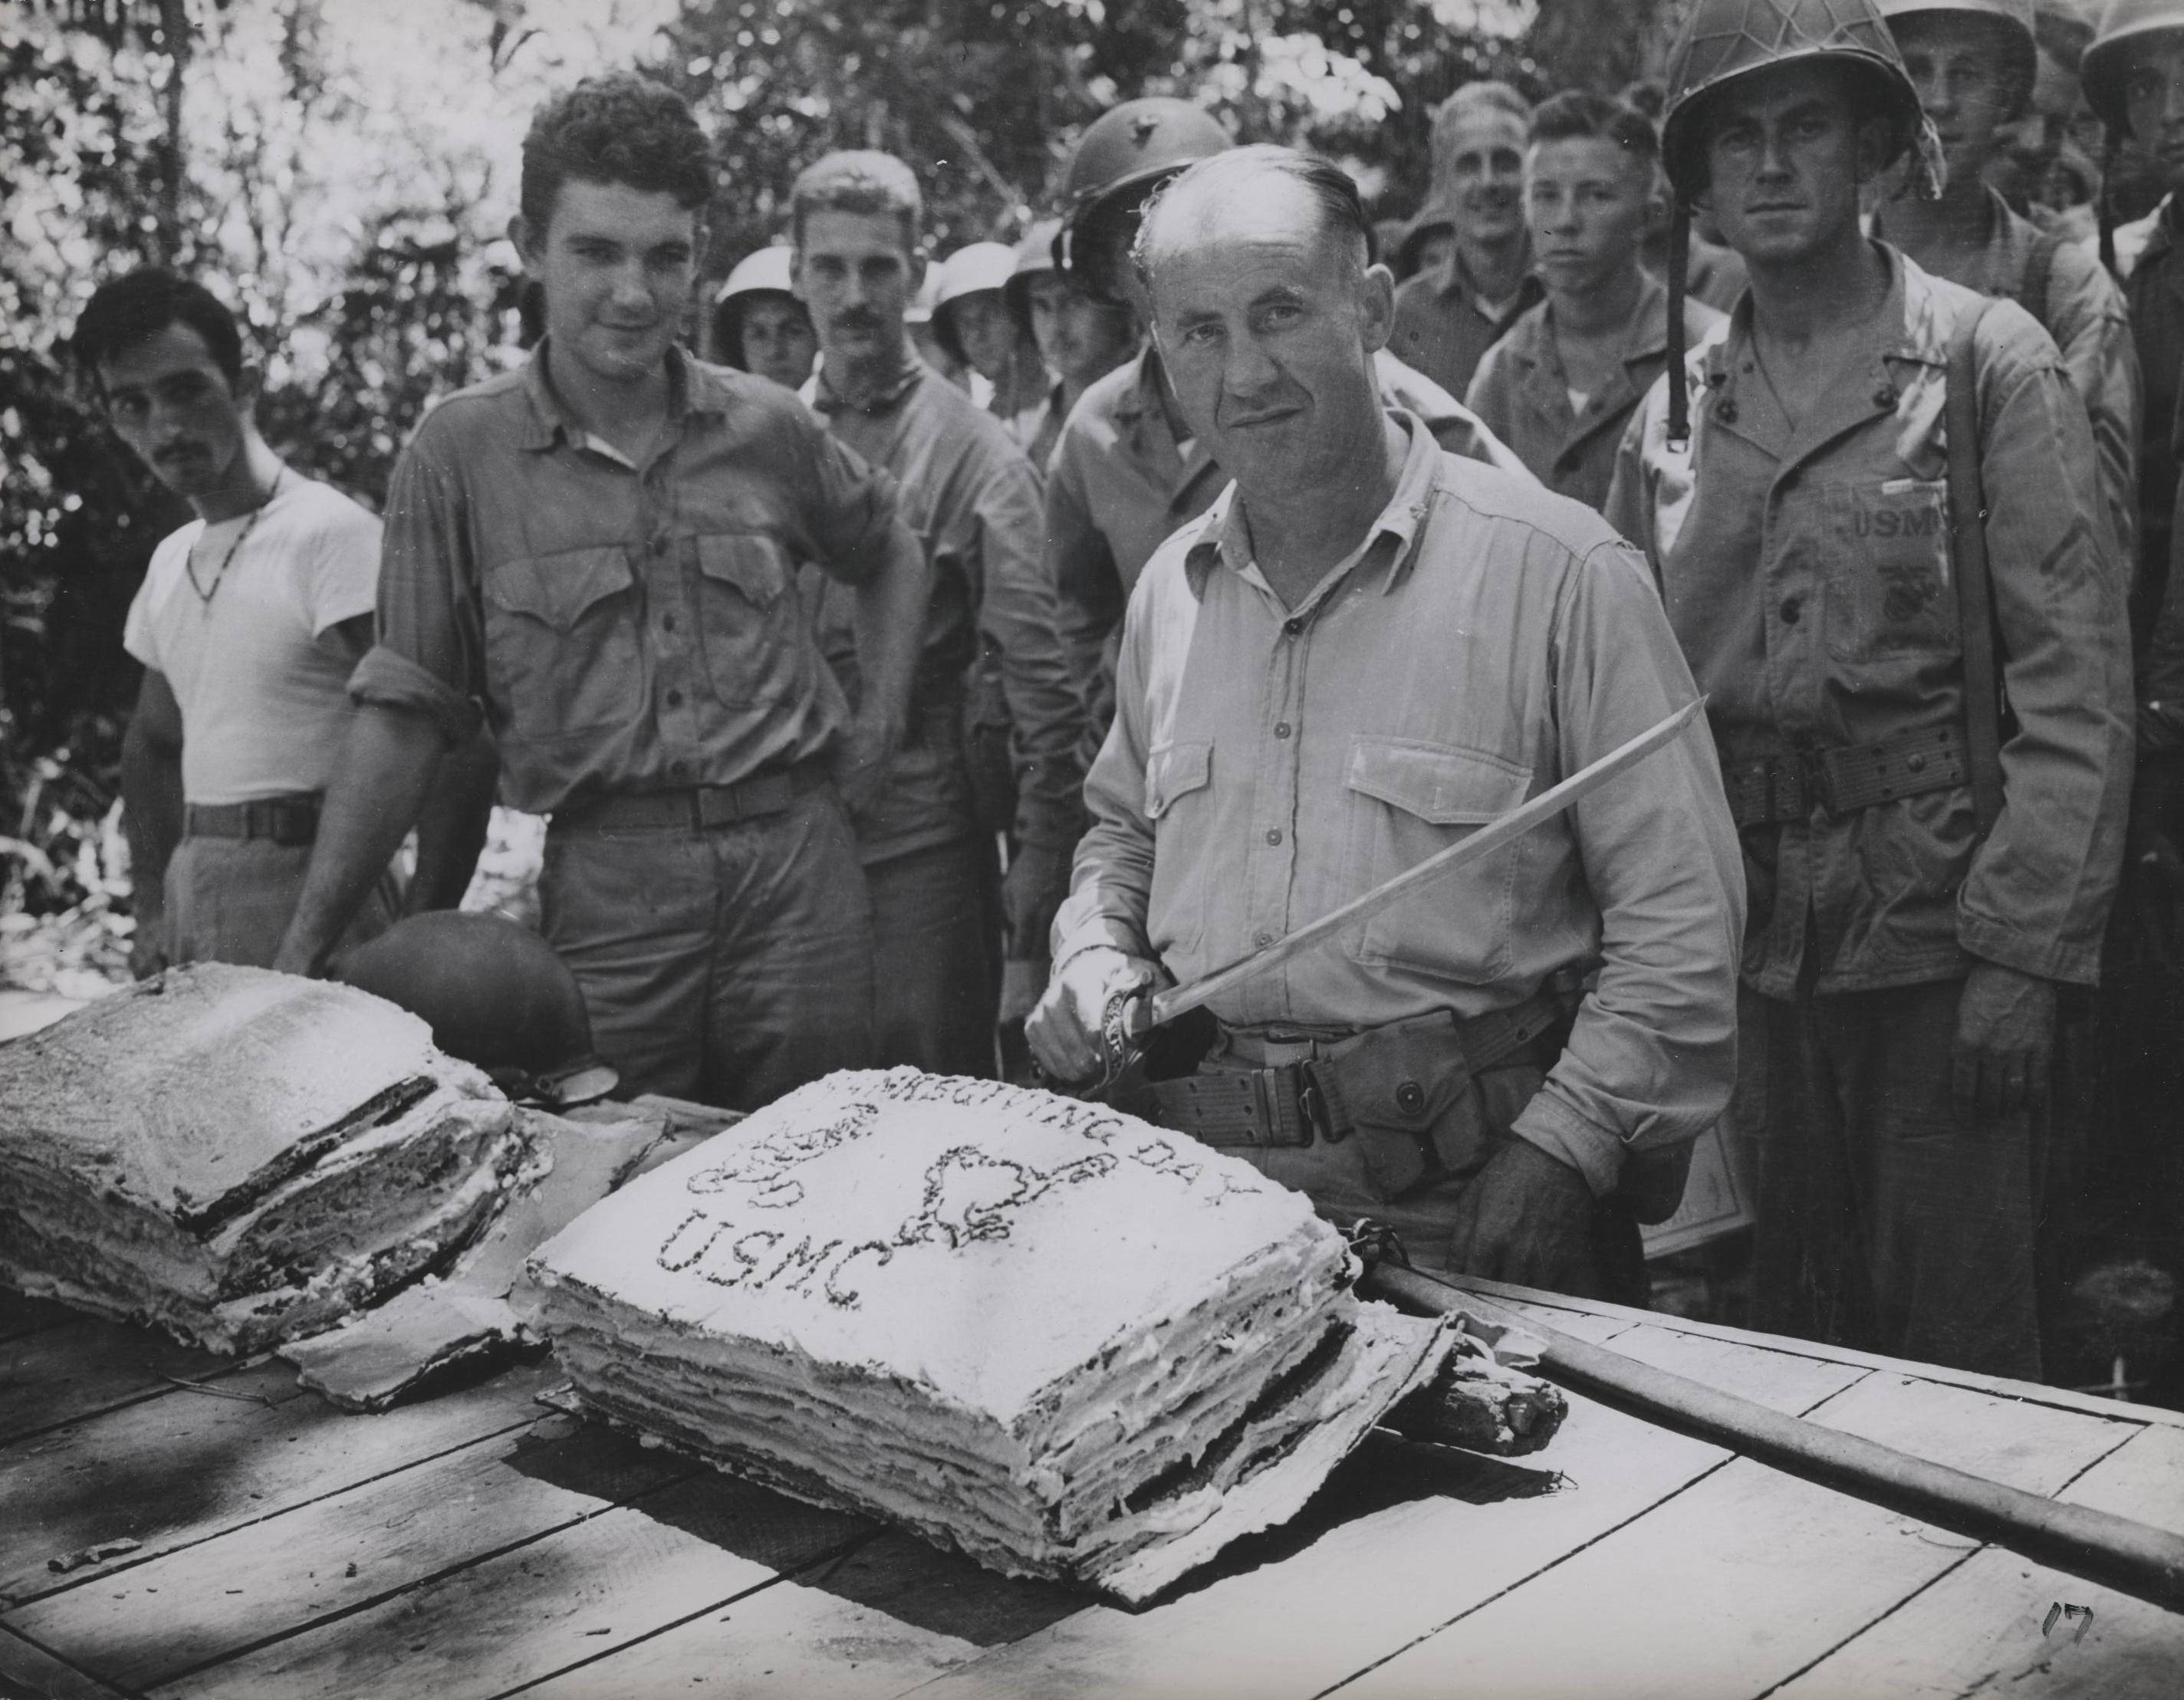 USMC Lt. Col. W.W. Stickney preparing to cut a Thanksgiving cake with a captured Japanese sword, Guadalcanal, 26 Nov 1942 (US Marine Corps photo)